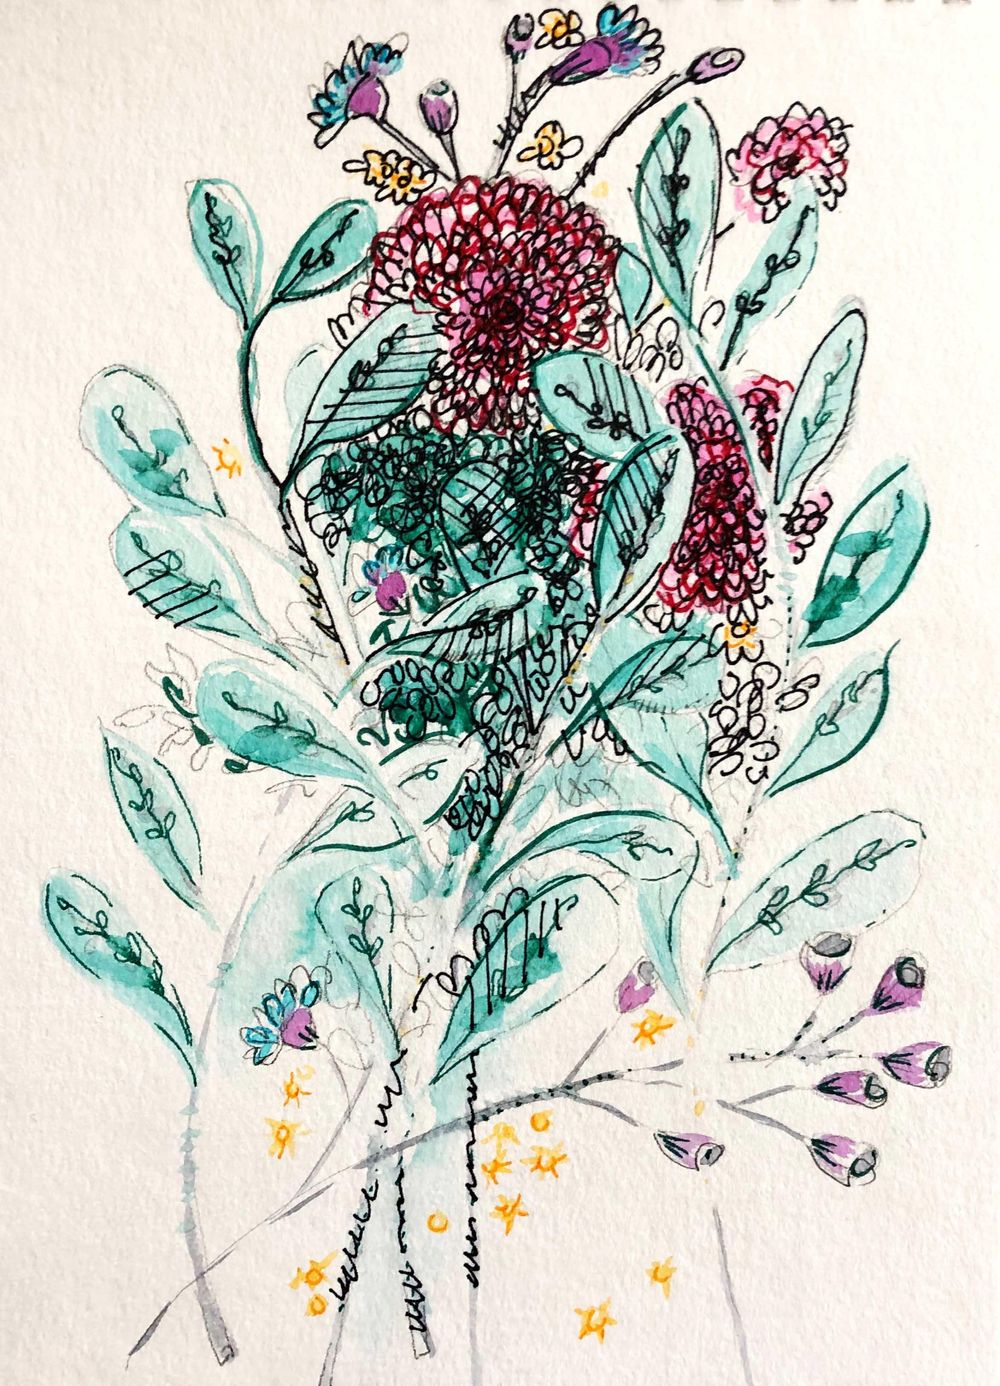 Making my own expressive florals - image 3 - student project